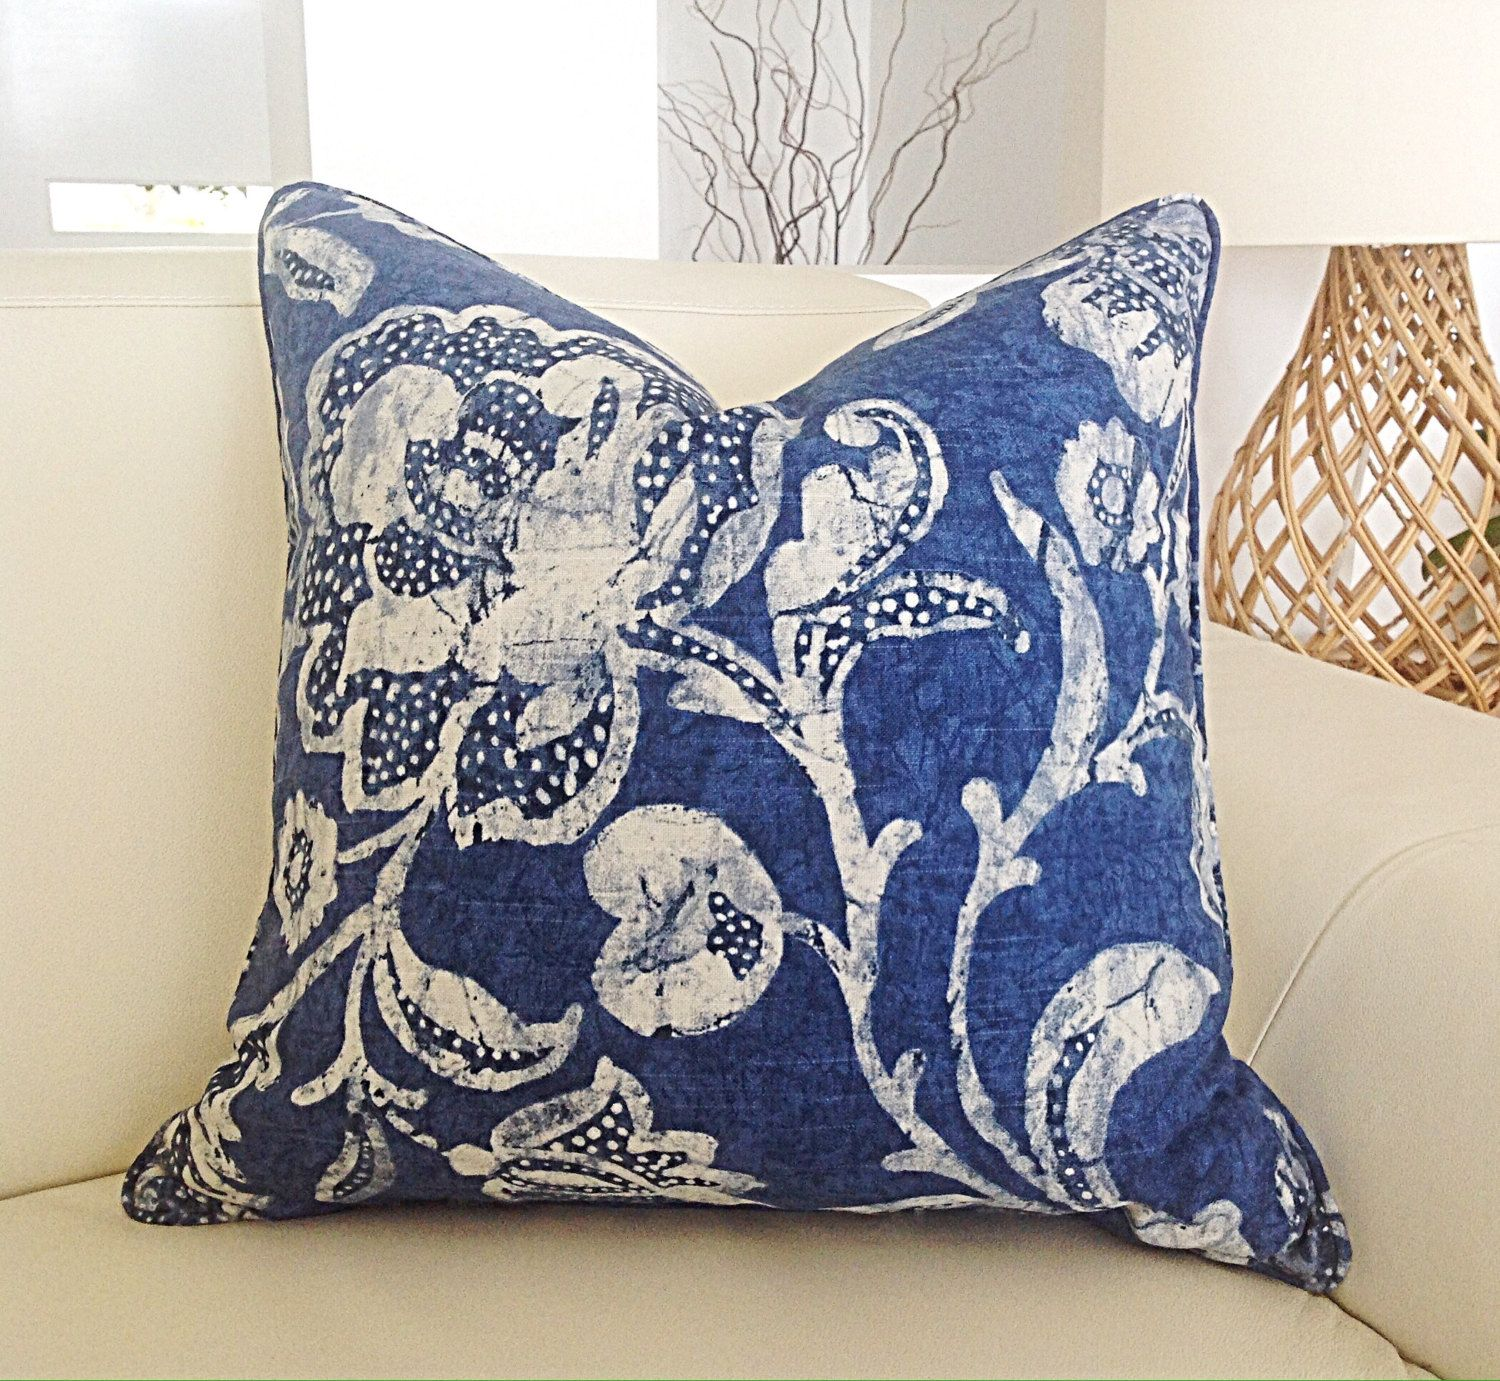 Hampton Style Airy Linens Fresh Blues: Blue And White Linen Hamptons Style Designer Cushion Cover